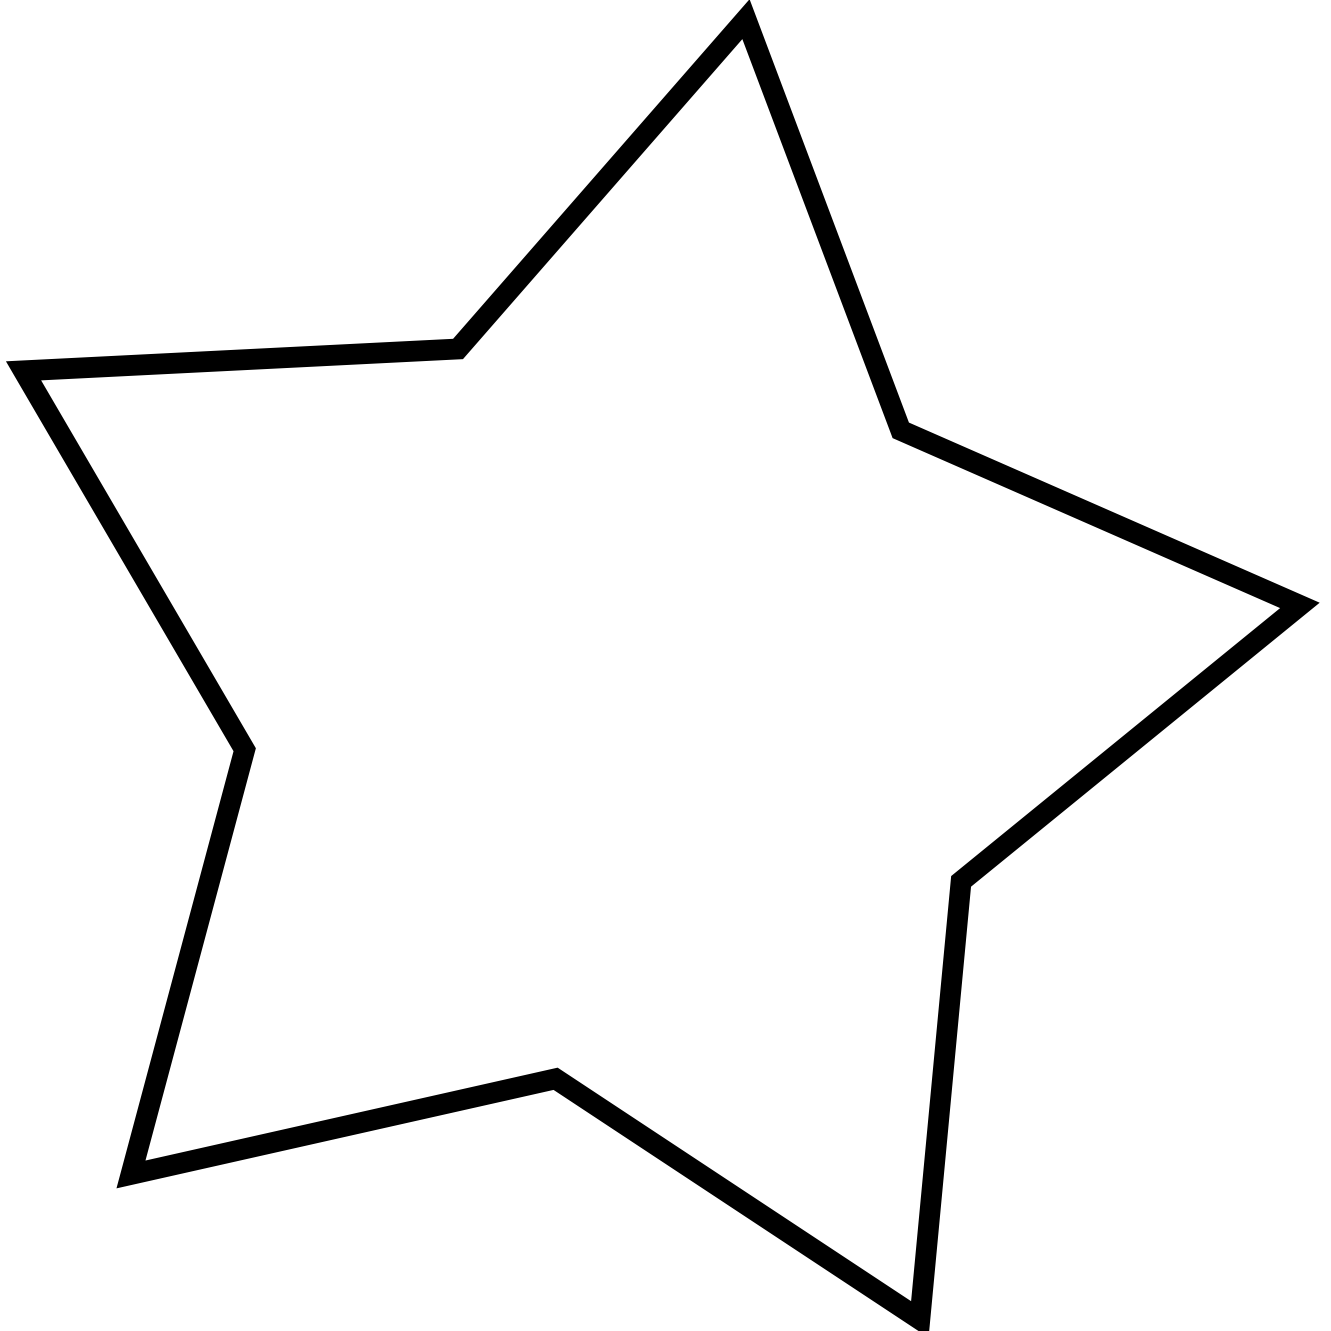 1331x1331 Free Stars Clipart Black And White Image